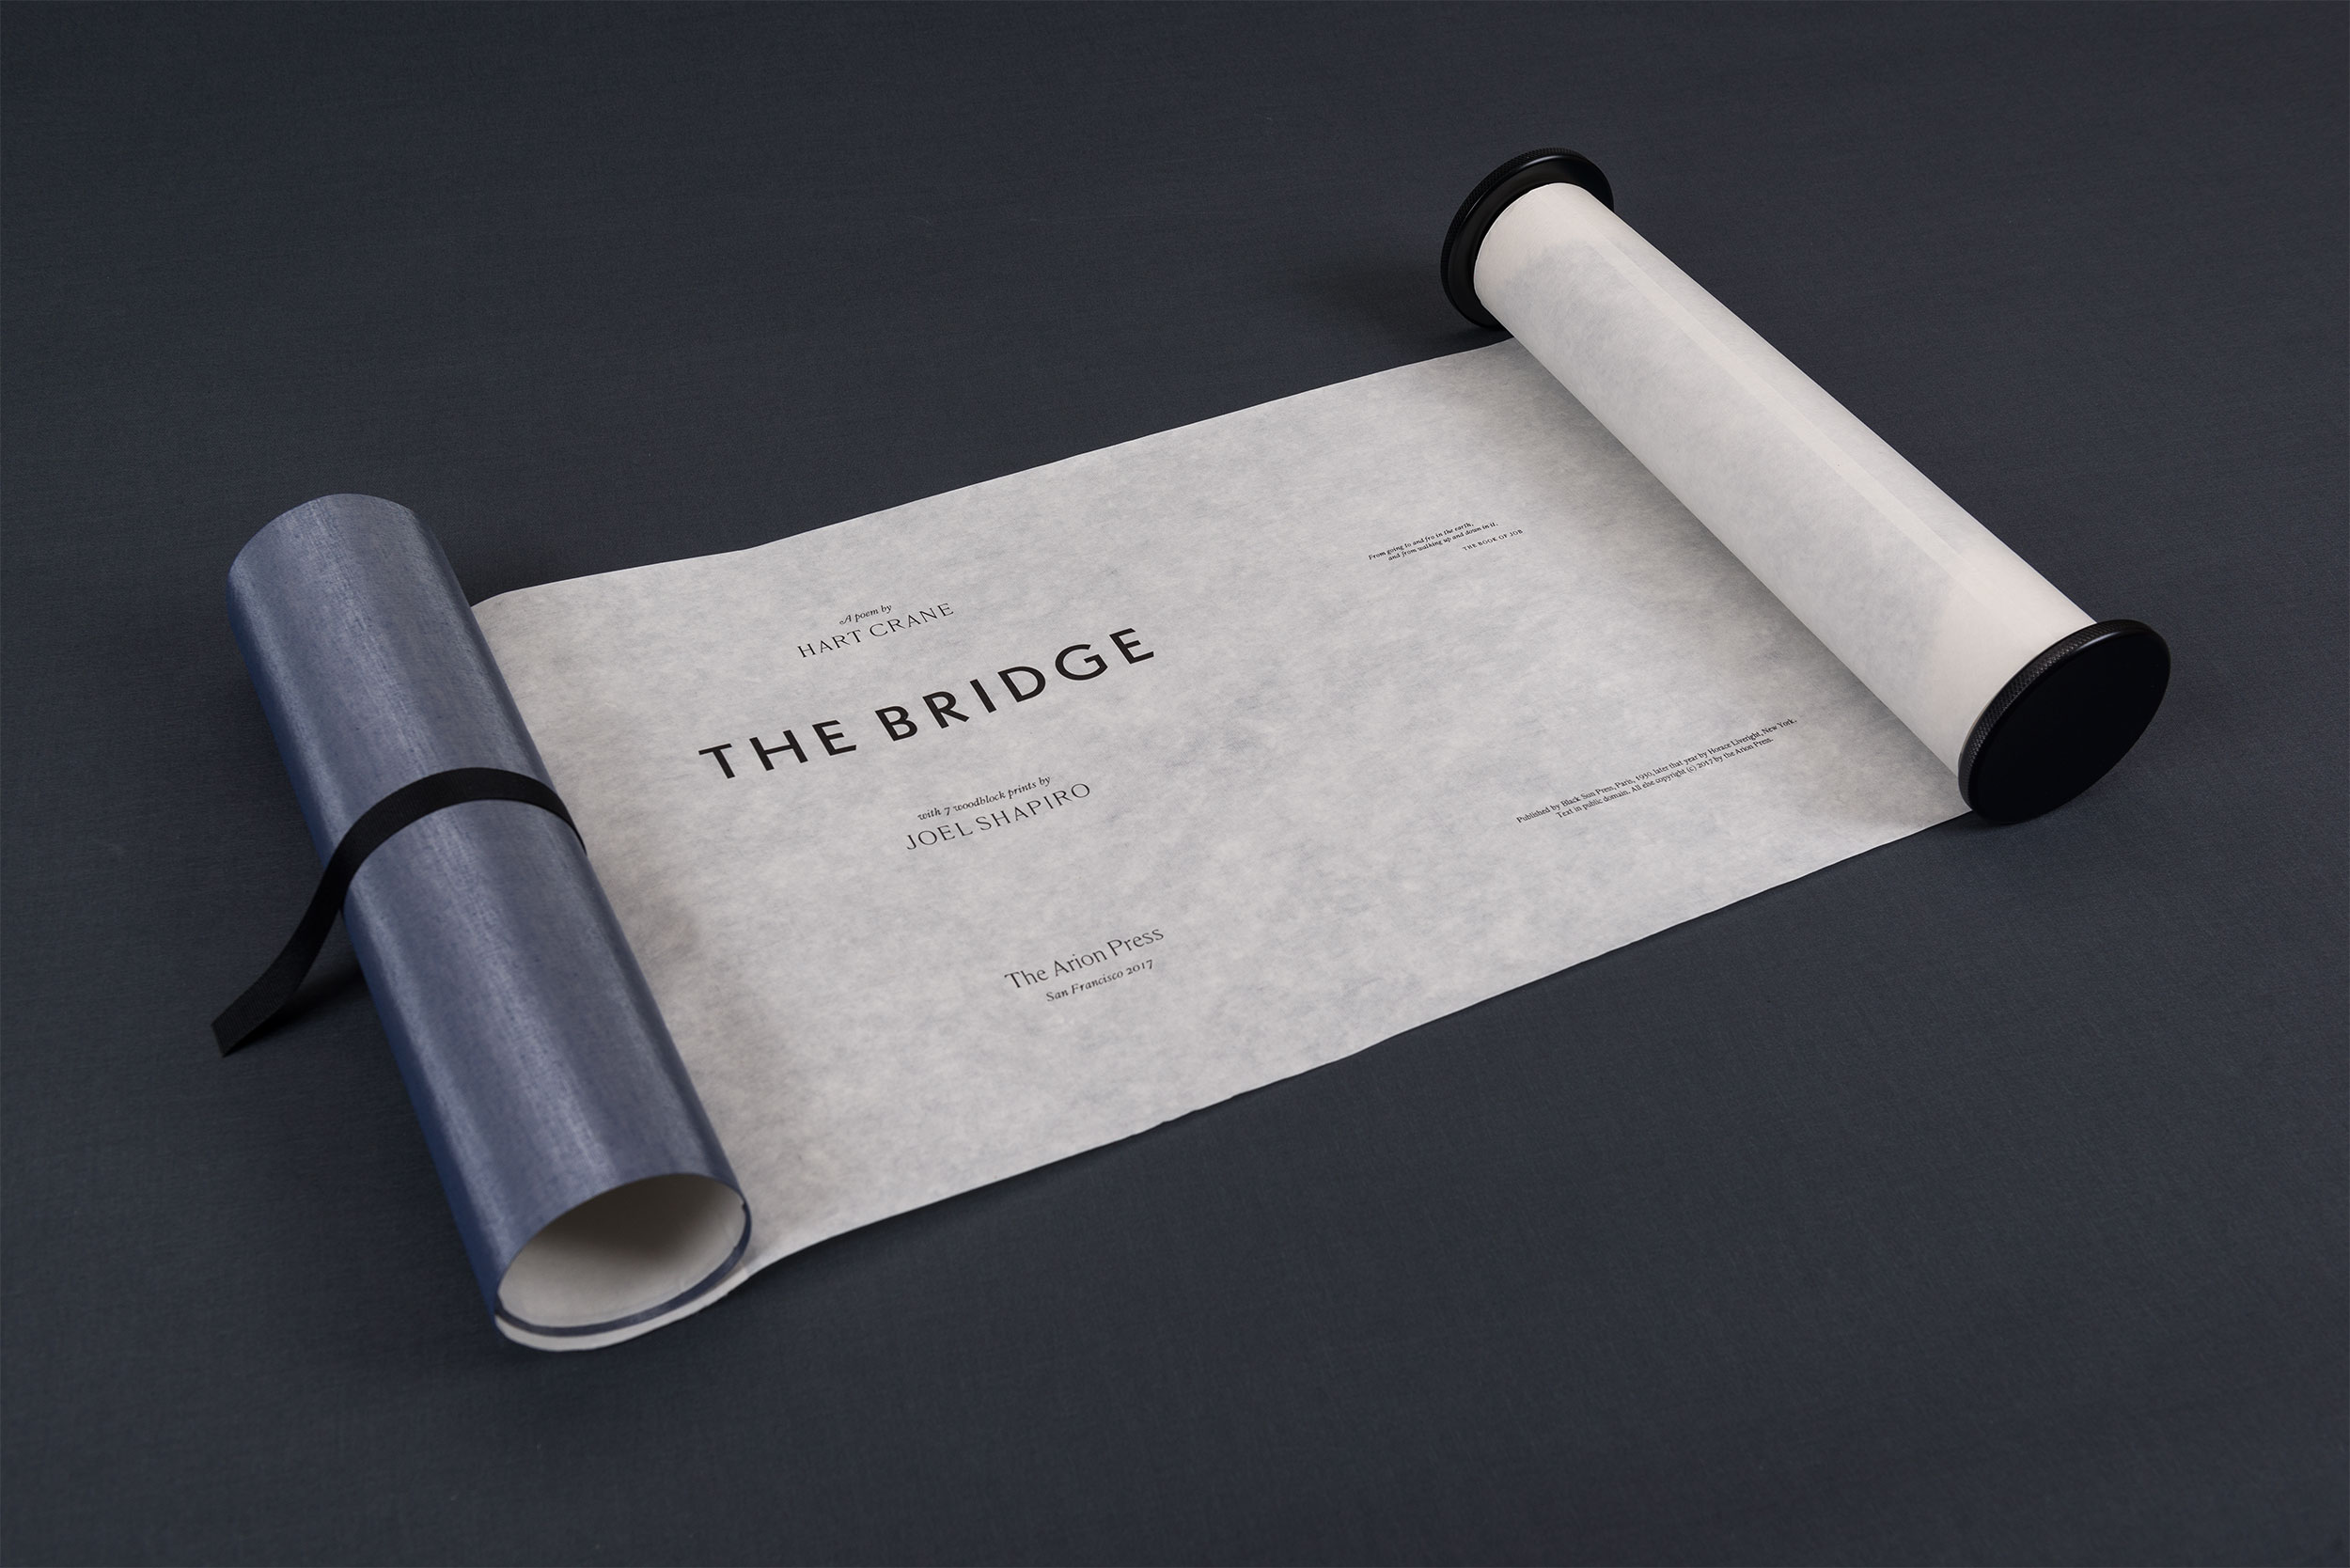 The-Bridge-(interior)-01.jpg